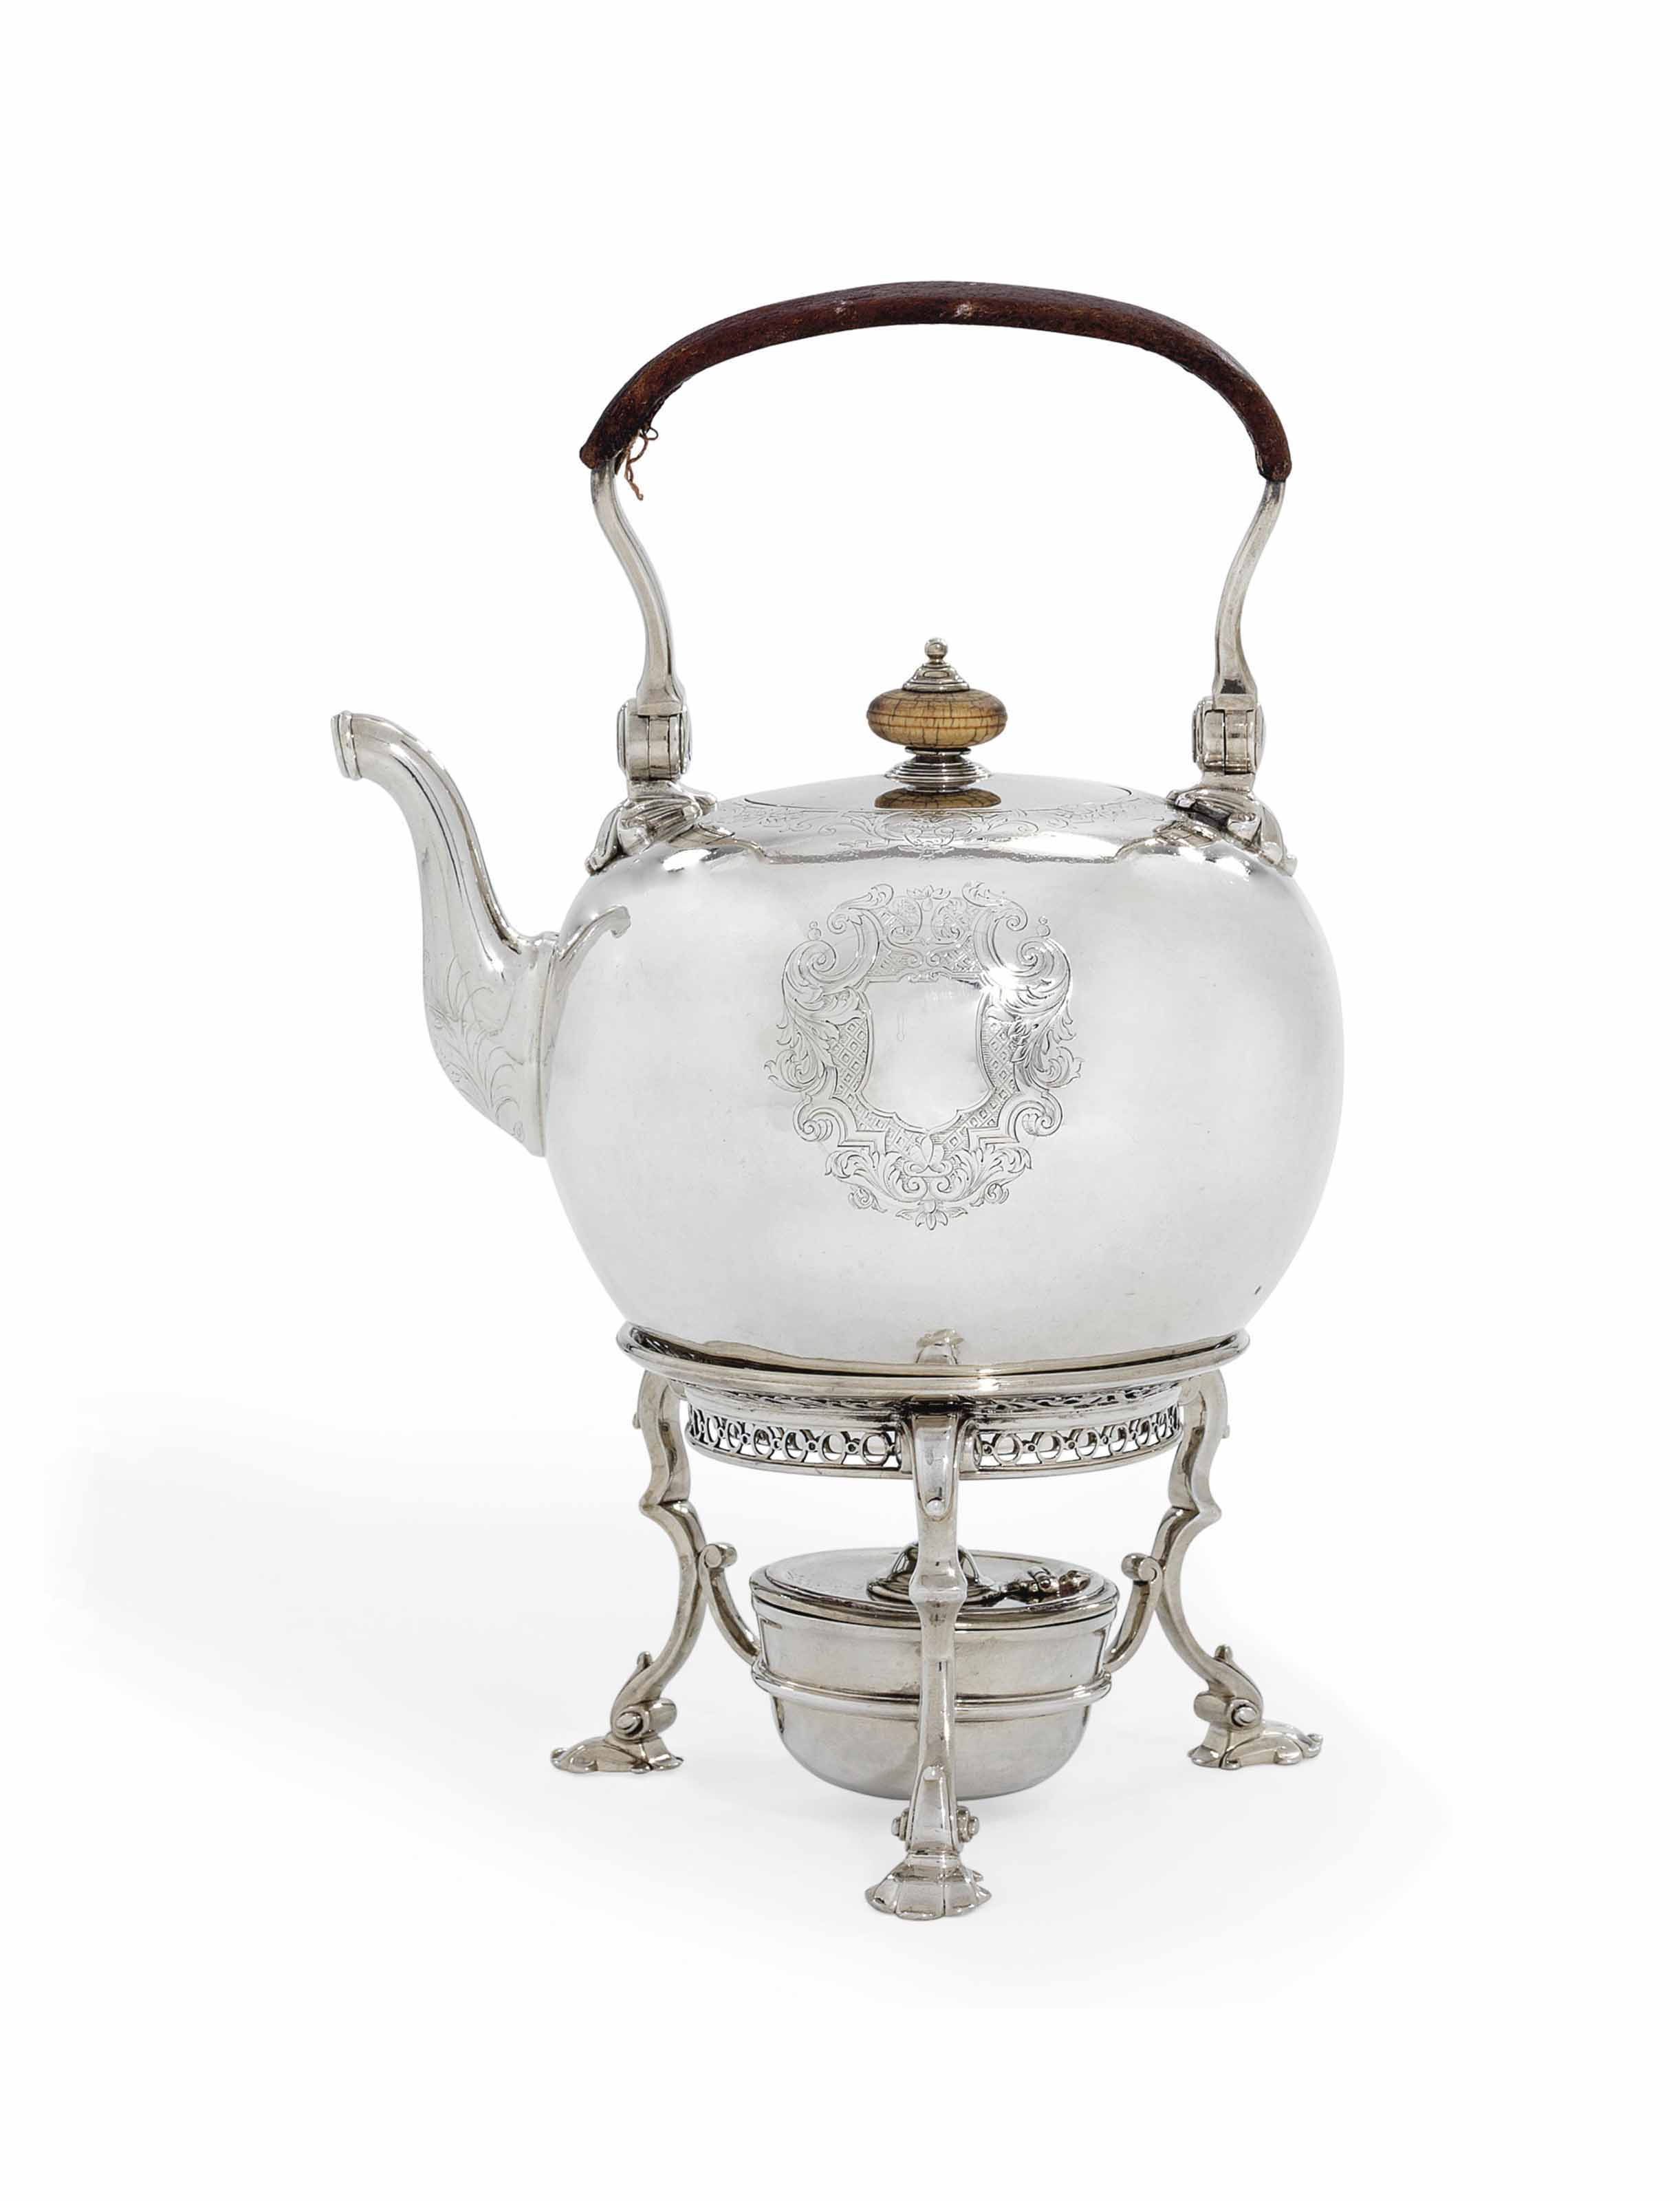 A GEORGE II SILVER TEA KETTLE,